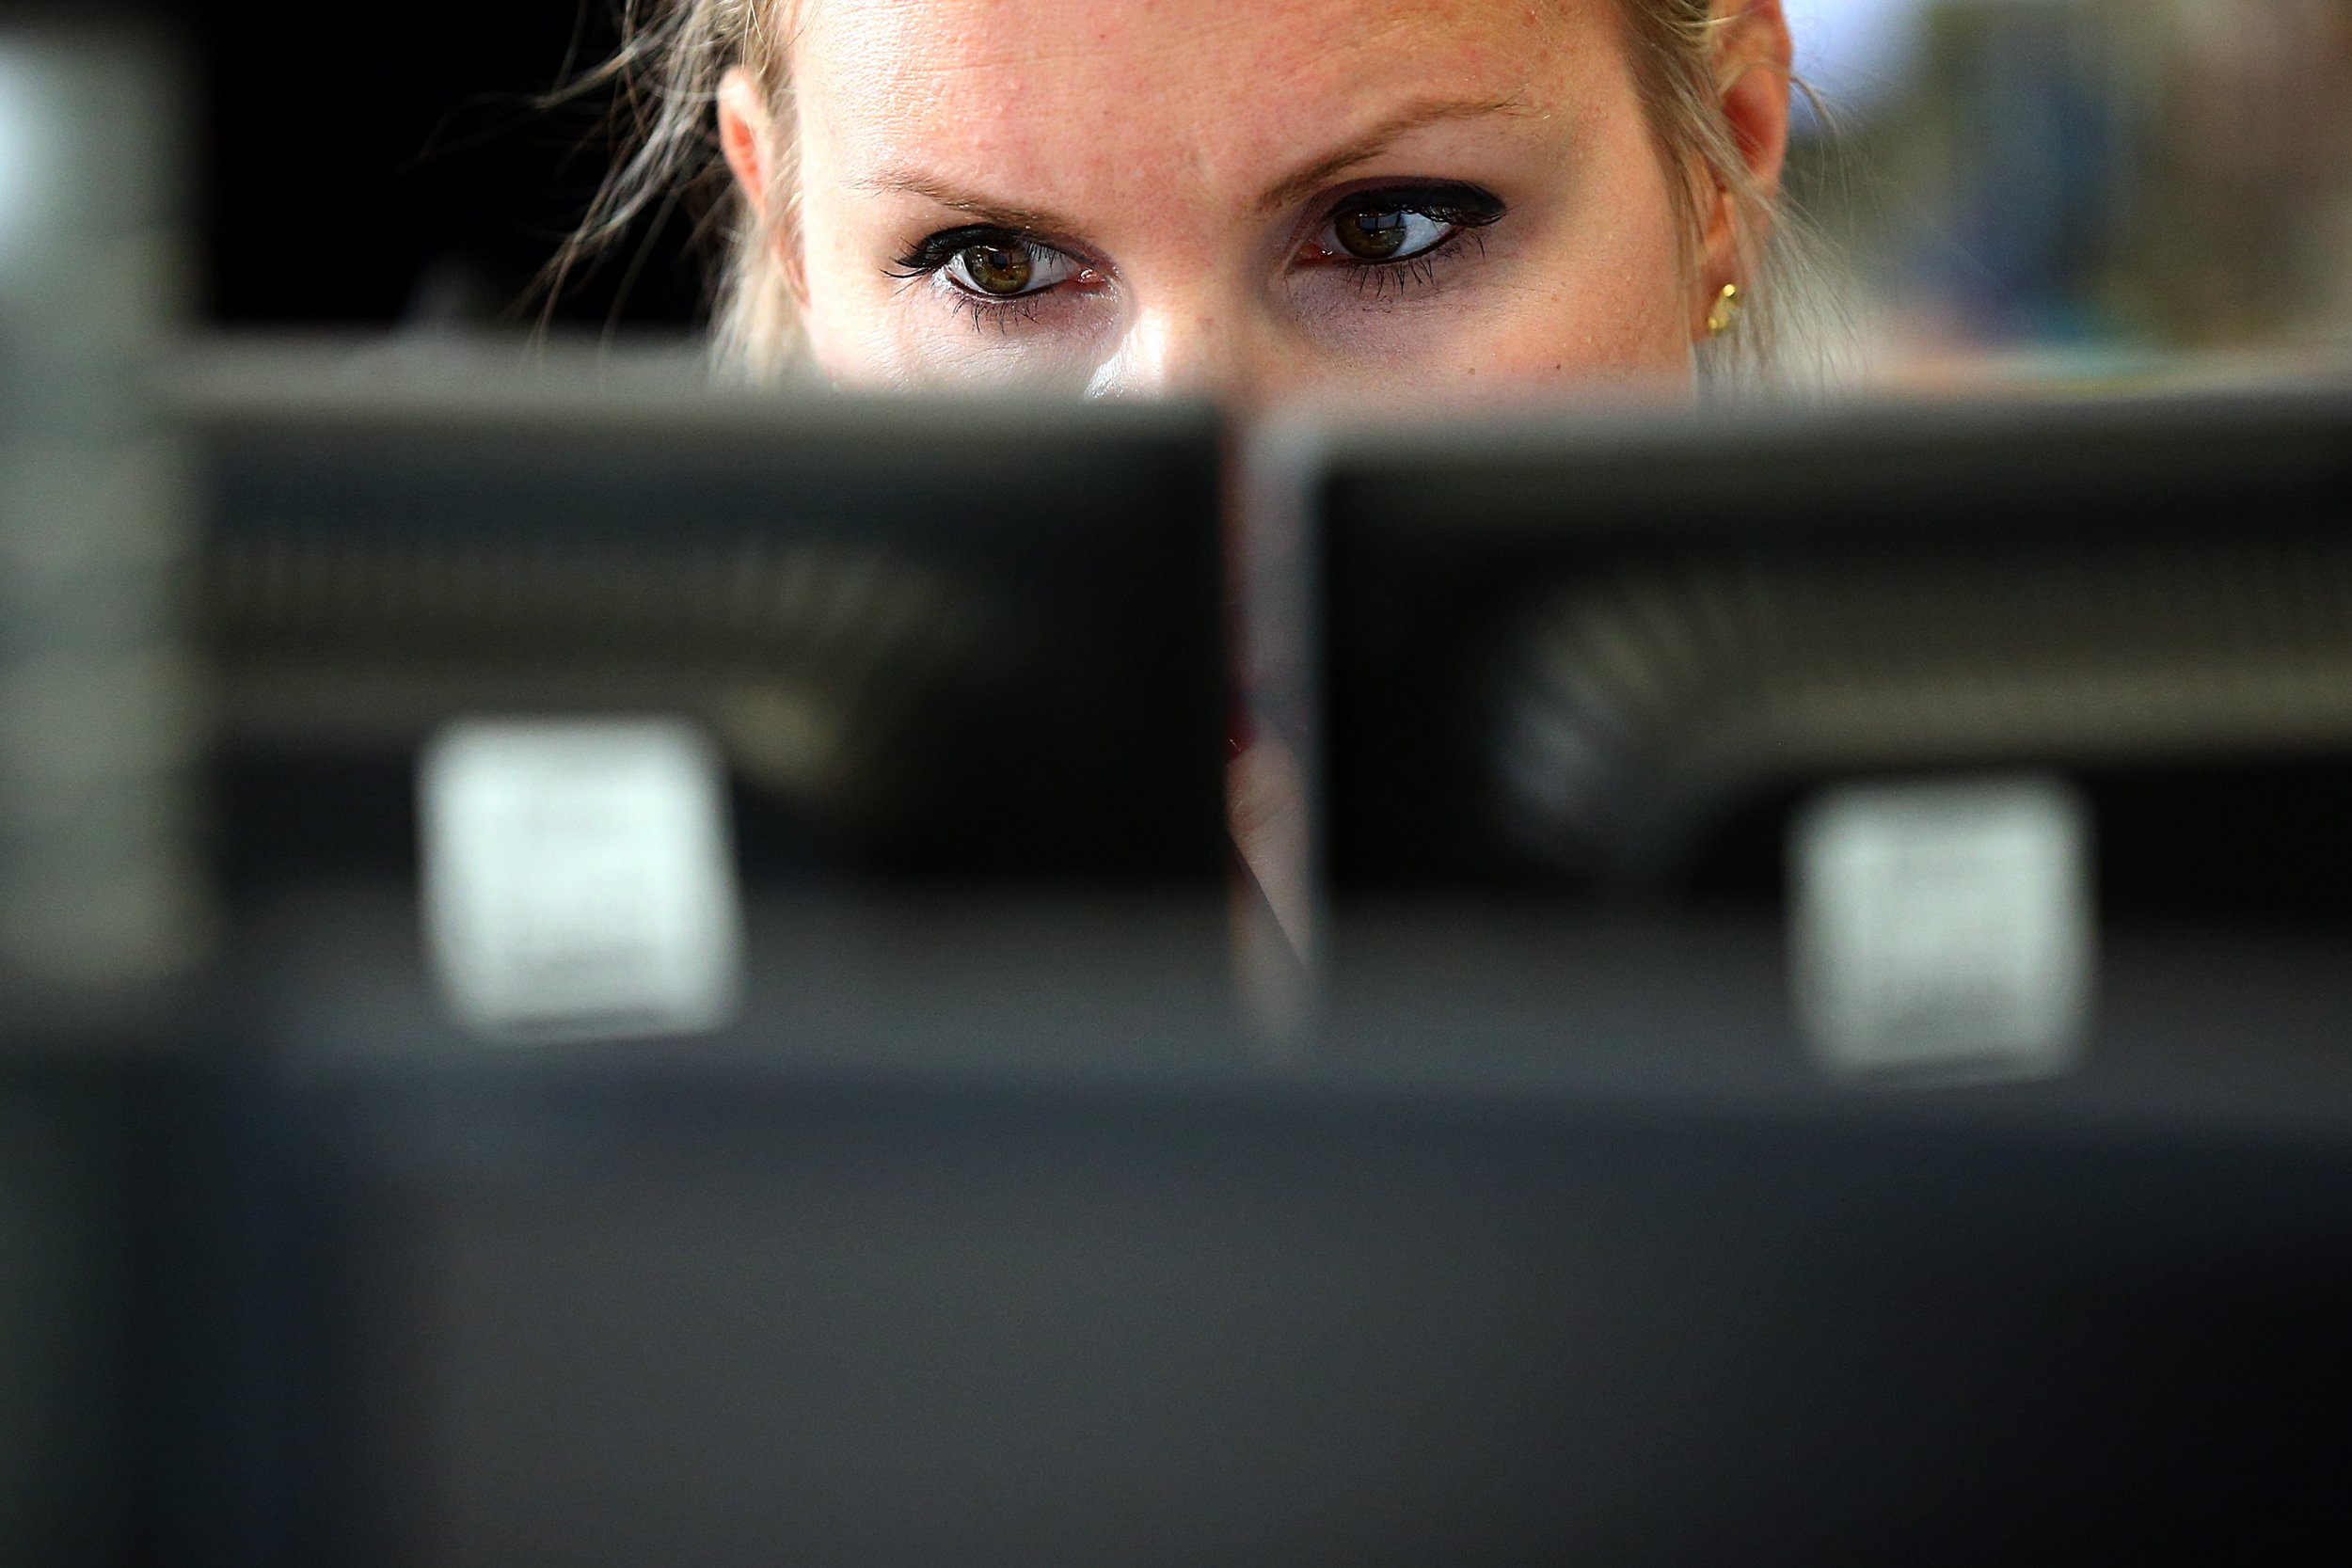 Working in an Office Is 'As Bad As Smoking'—But One Hour of Exercise Will Offset Health Risks